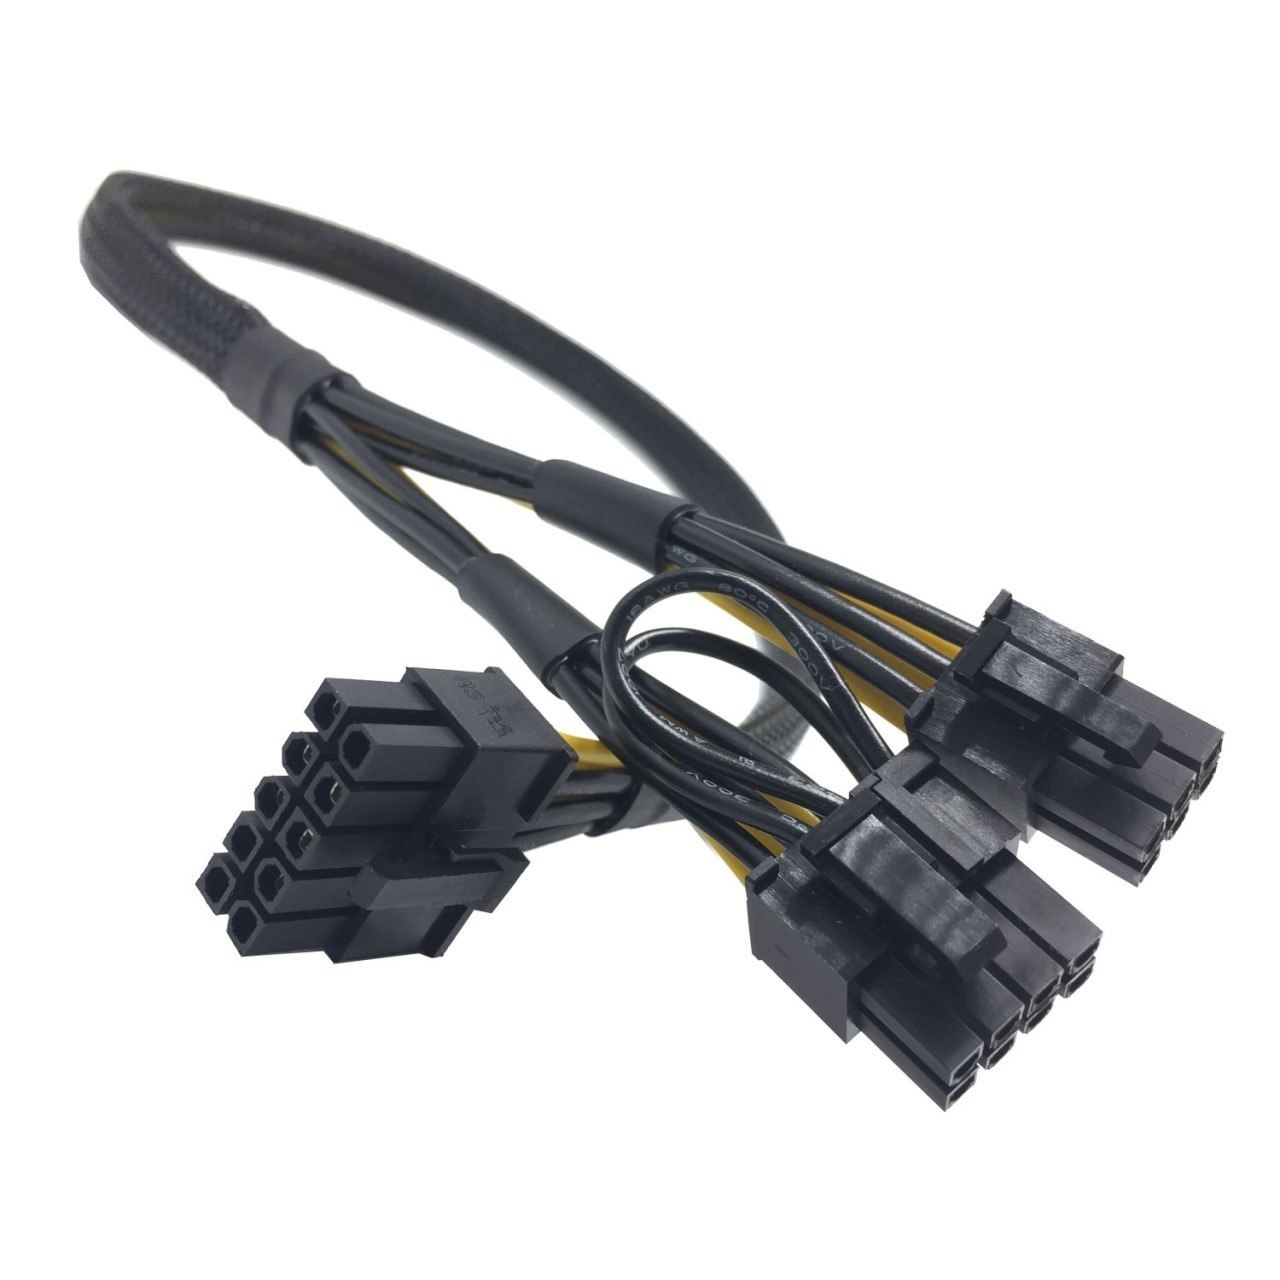 hight resolution of hp server ml350 gen9 10 pin to 8 pin and 6 pin gpu pcie power cable moddiy com